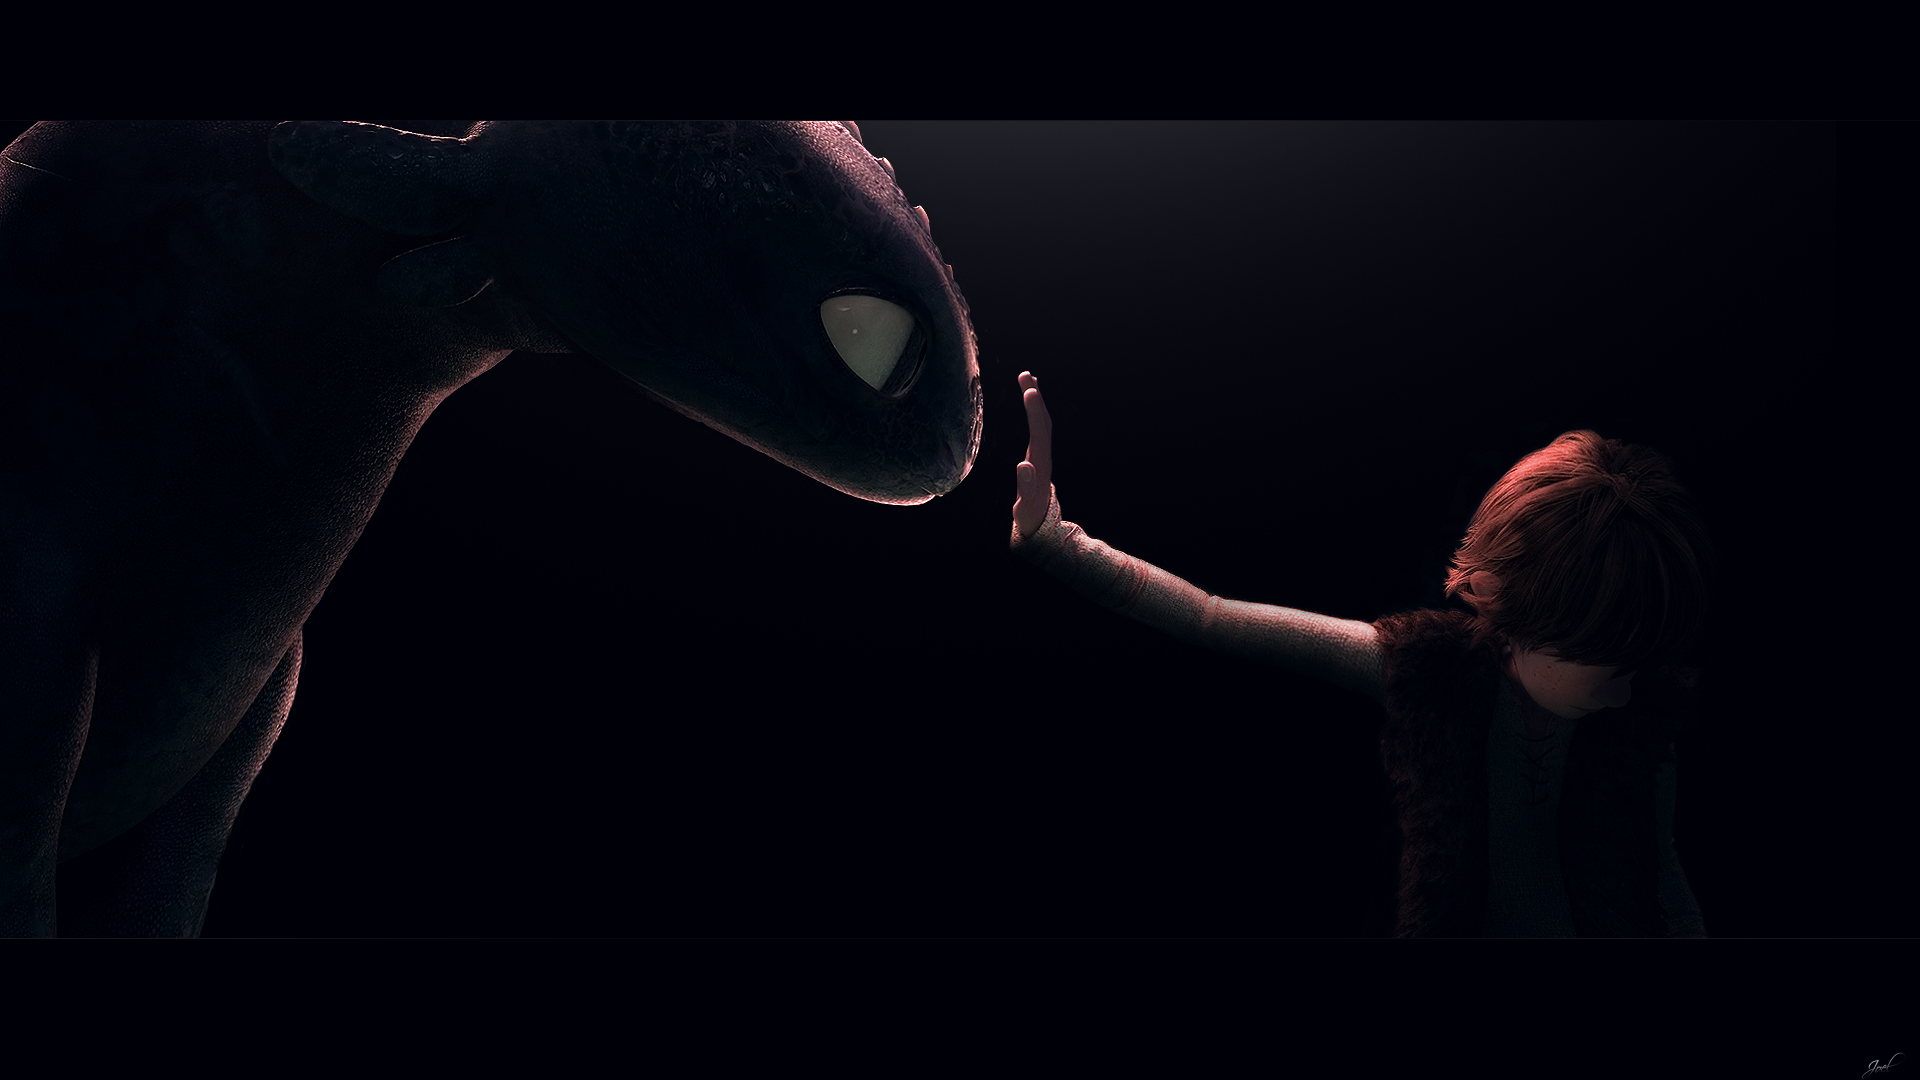 How To Train Your Dragon Computer Wallpapers Desktop 1920x1080